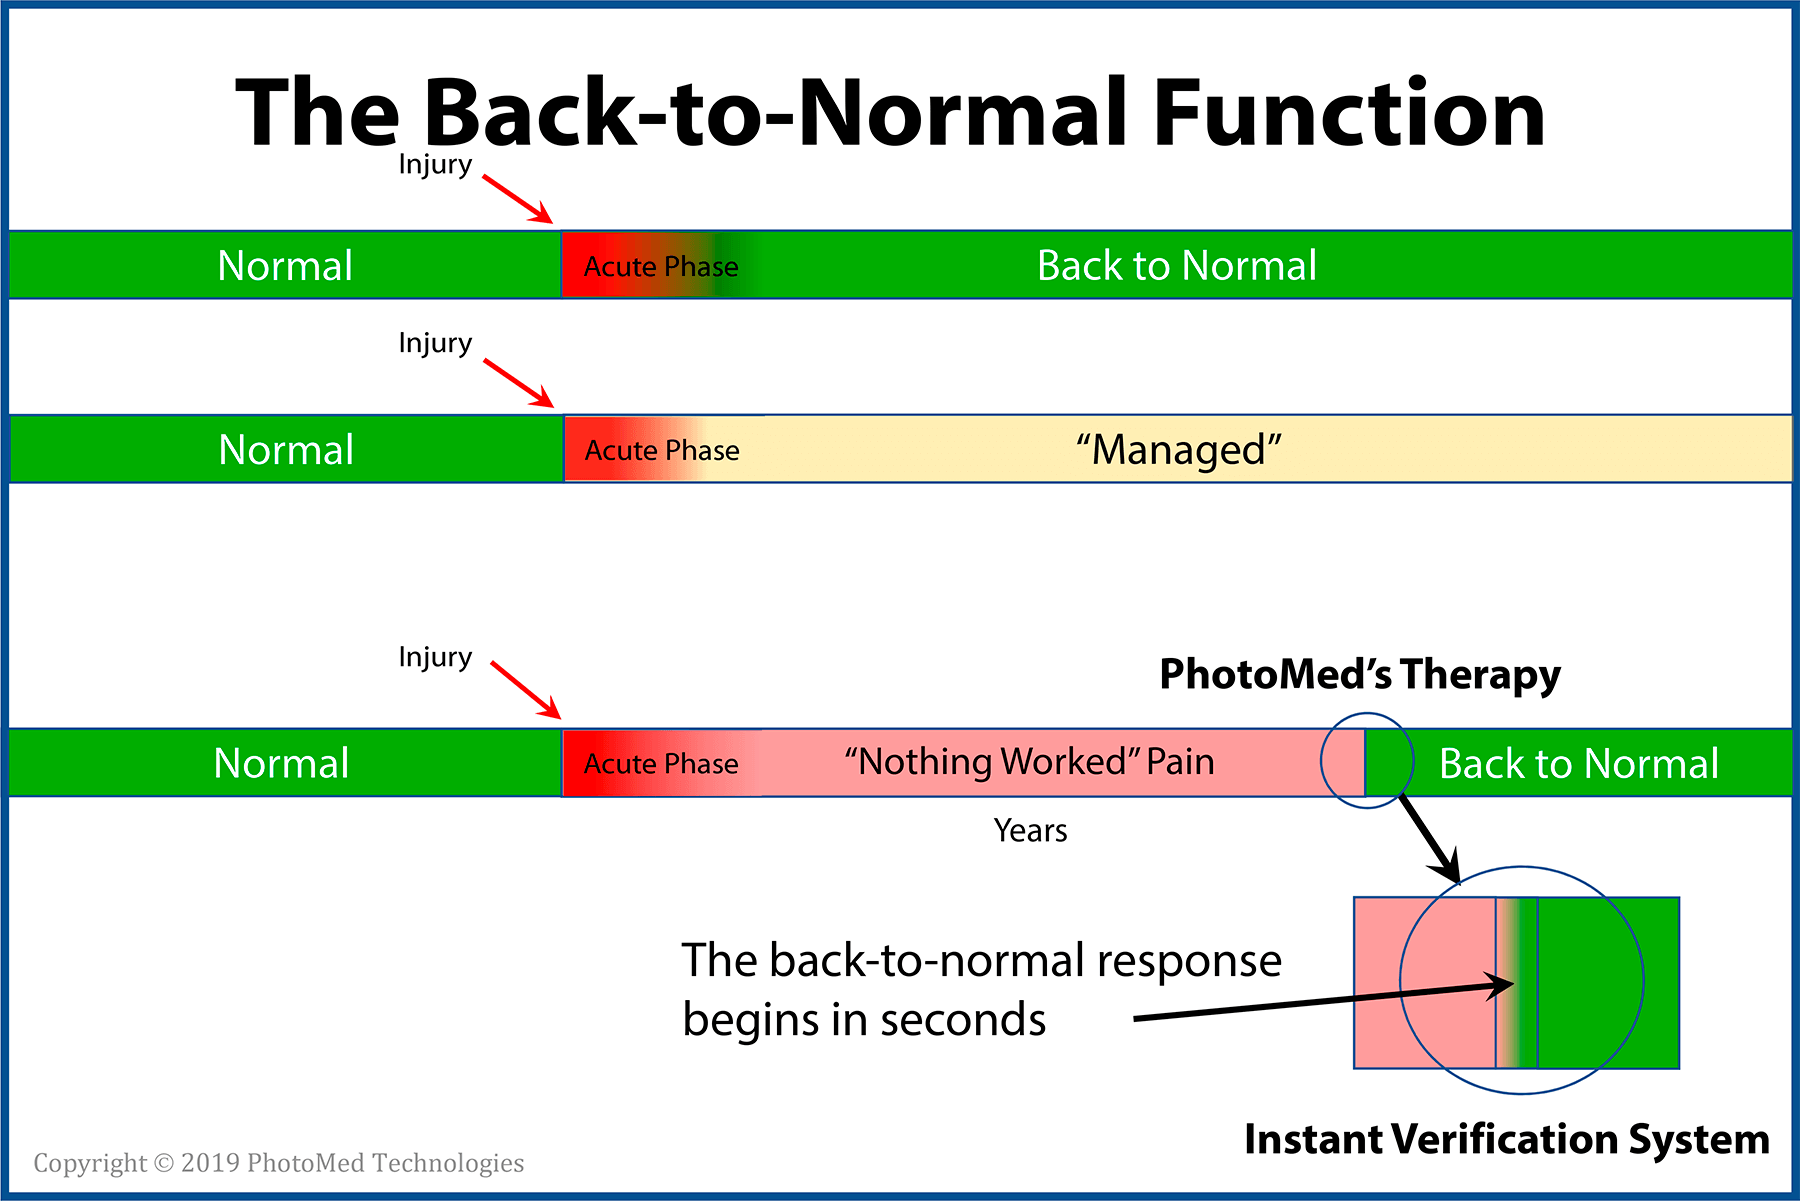 Figure 1  - Depiction of the back-to-normal response after an injury. For people without chronic pain, the return typically occurs as part of the conclusion of the acute phase. For modeling purposes, the treatment-resistant pain experience (with no known cause for its presence) appears to be waiting for a signal to conclude. Real-time data and recording may help answer new questions.